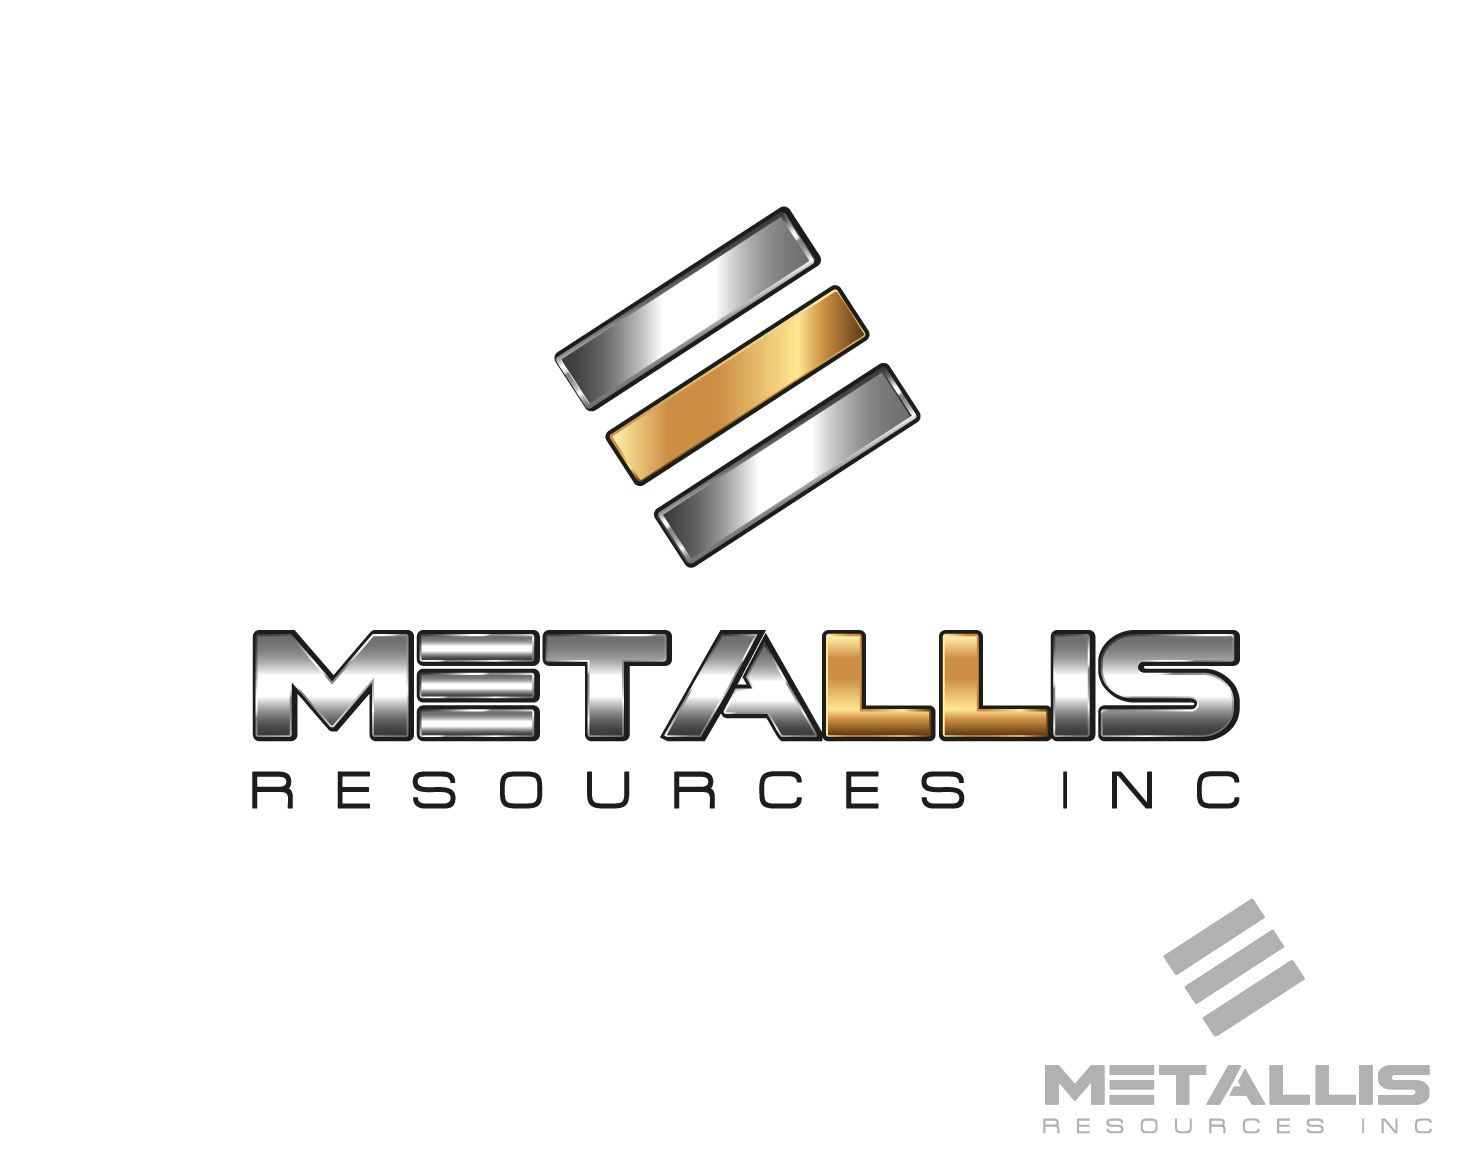 Logo Design by VENTSISLAV KOVACHEV - Entry No. 111 in the Logo Design Contest Metallis Resources Inc Logo Design.